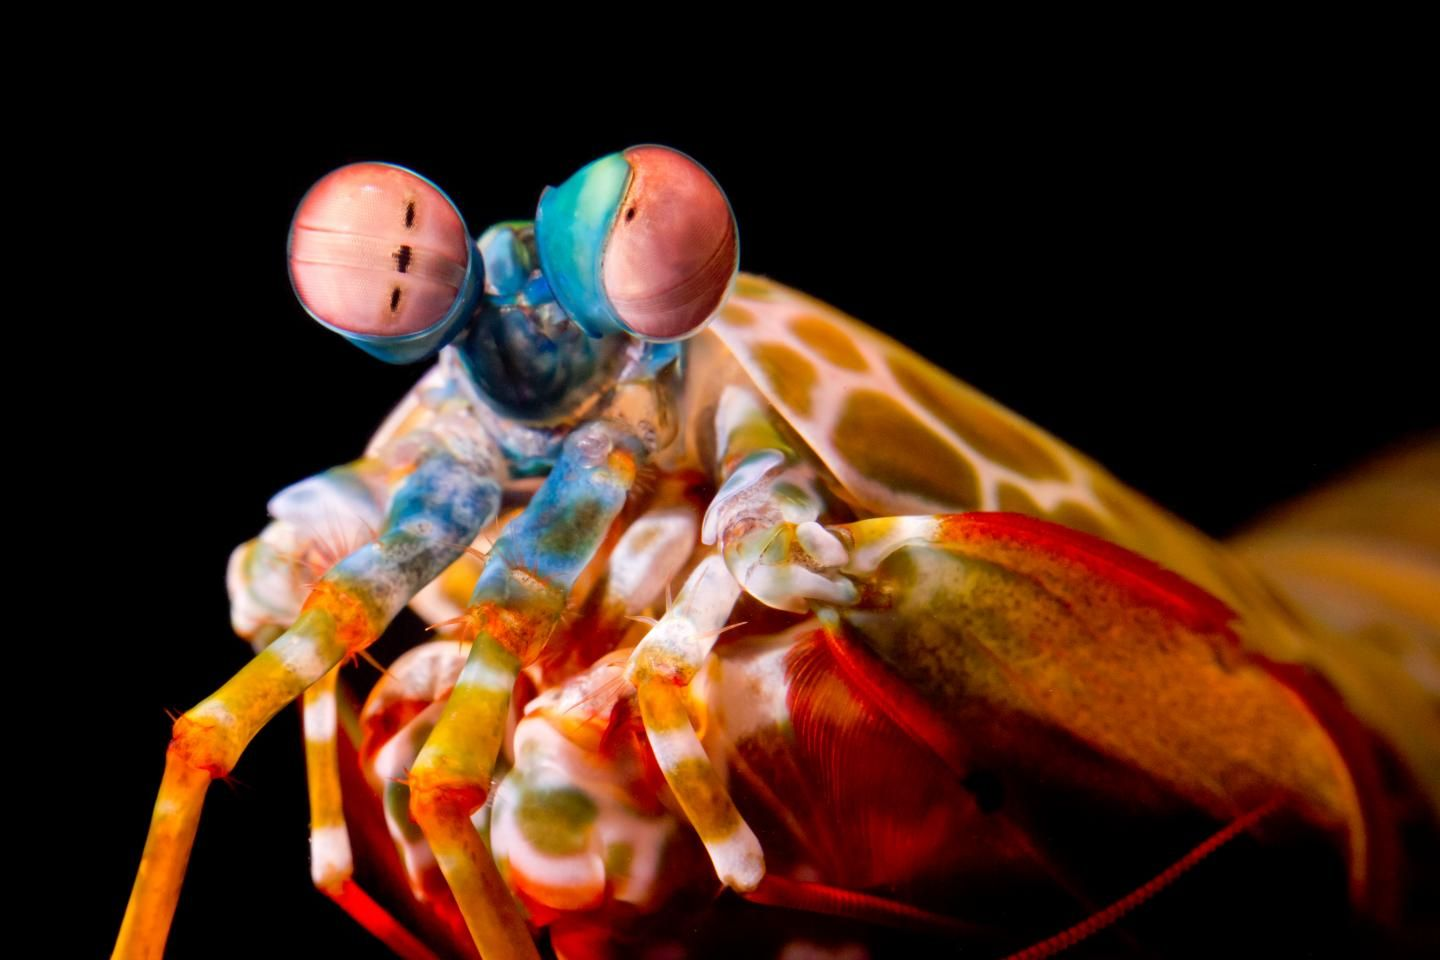 mantis shrimp have perfected the eye roll to better see